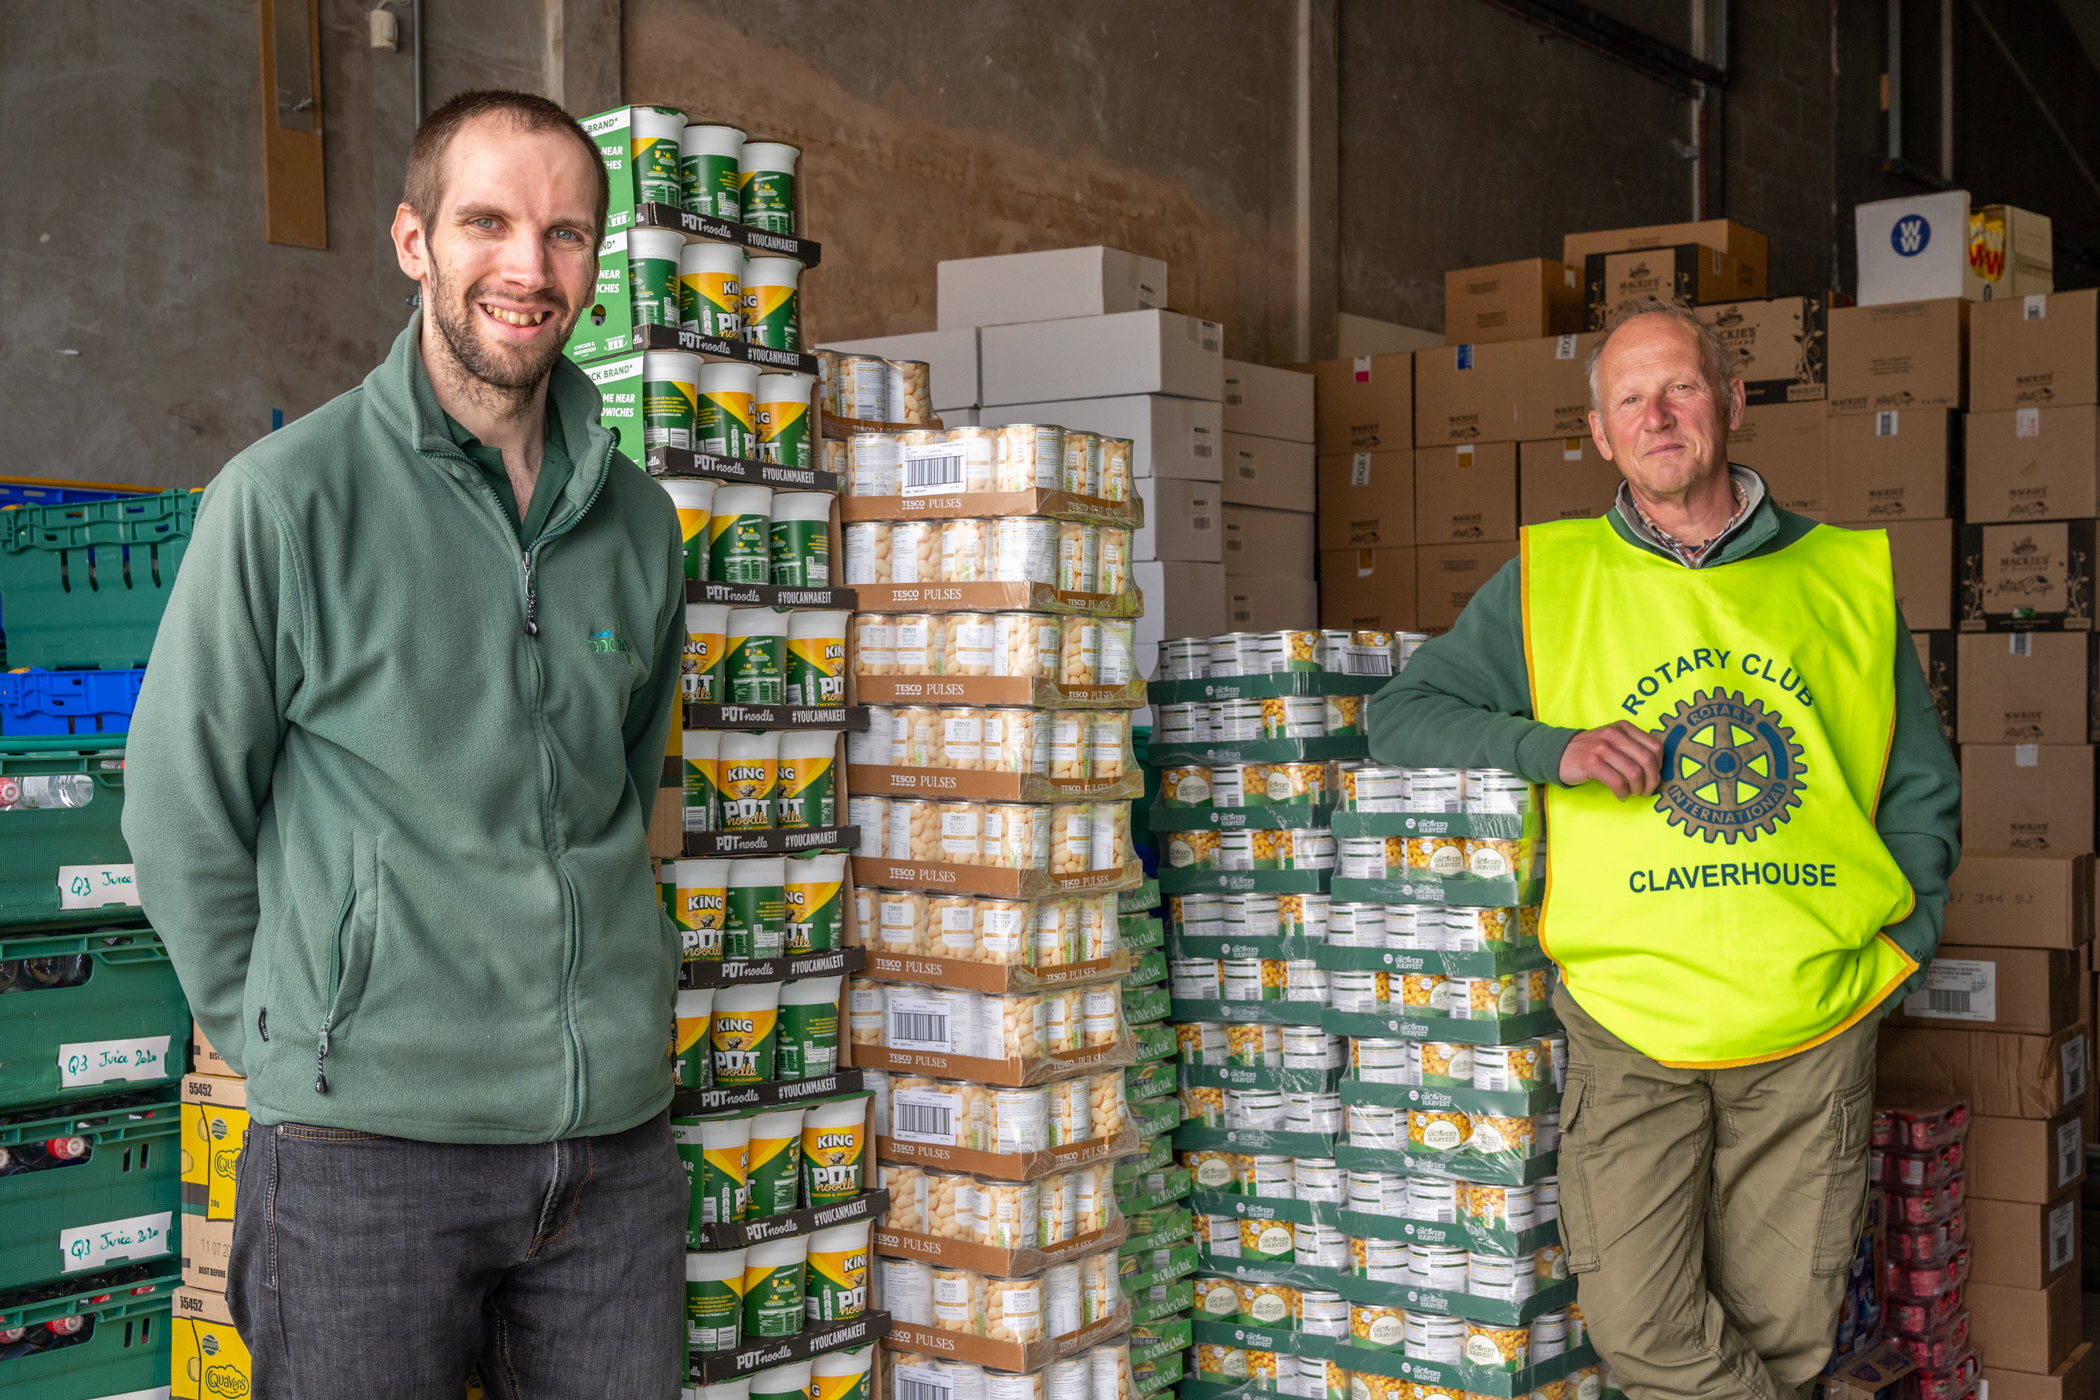 Michael Calder (left) Dundee Foodbank warehouse manager and Nick White, Claverhouse Rotarian and Dundee Foodbank volunteer.